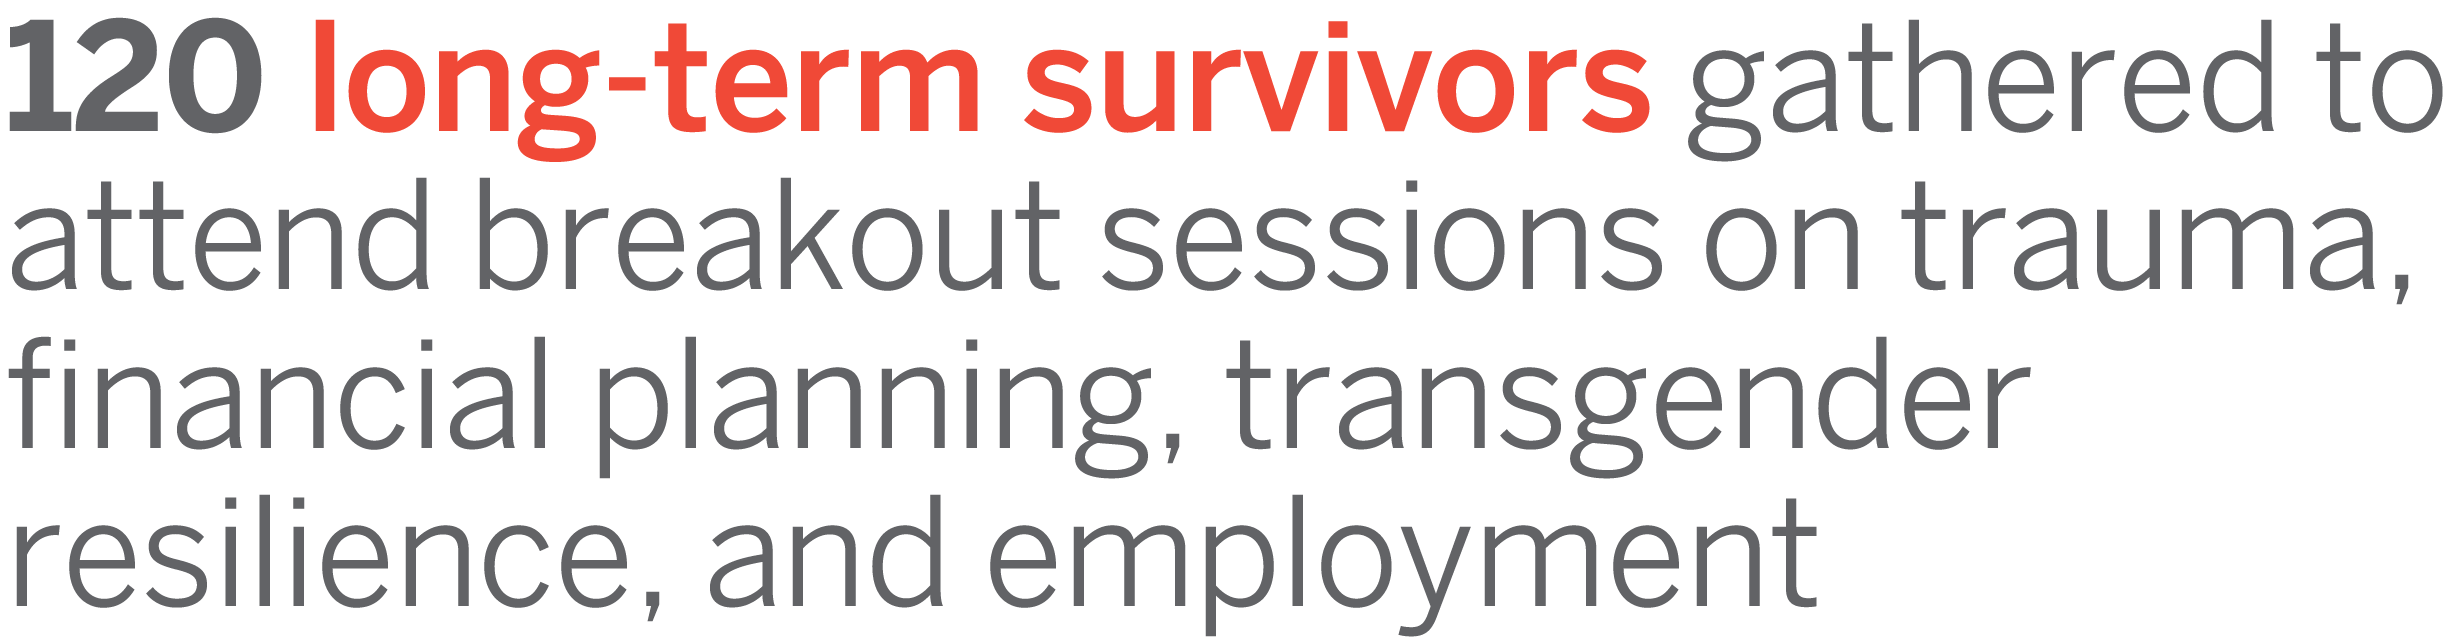 120 long-term survivors gathered to attend breakout sessions on trauma, financial planning, transgender resilience, and employment